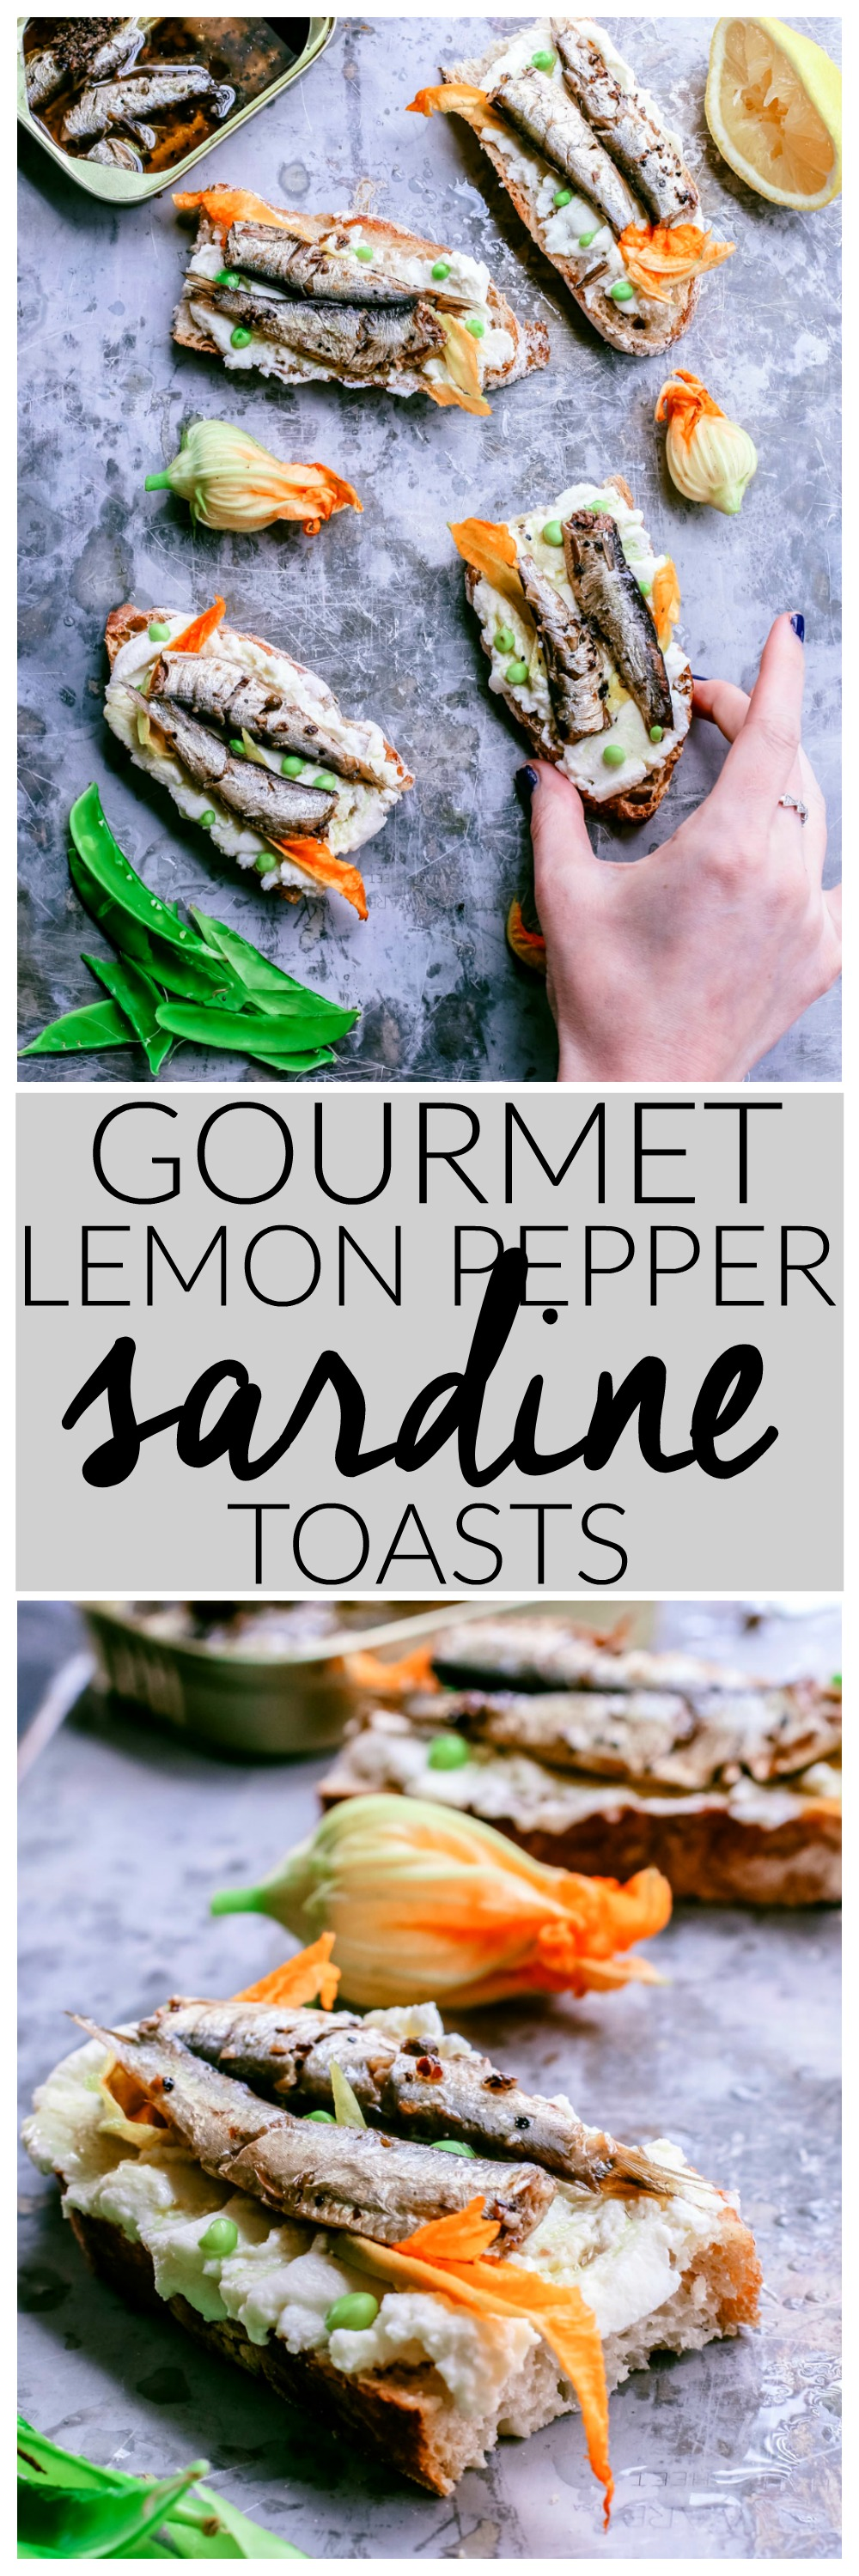 Gourmet Lemon Pepper Sardine Toasts | Killing Thyme